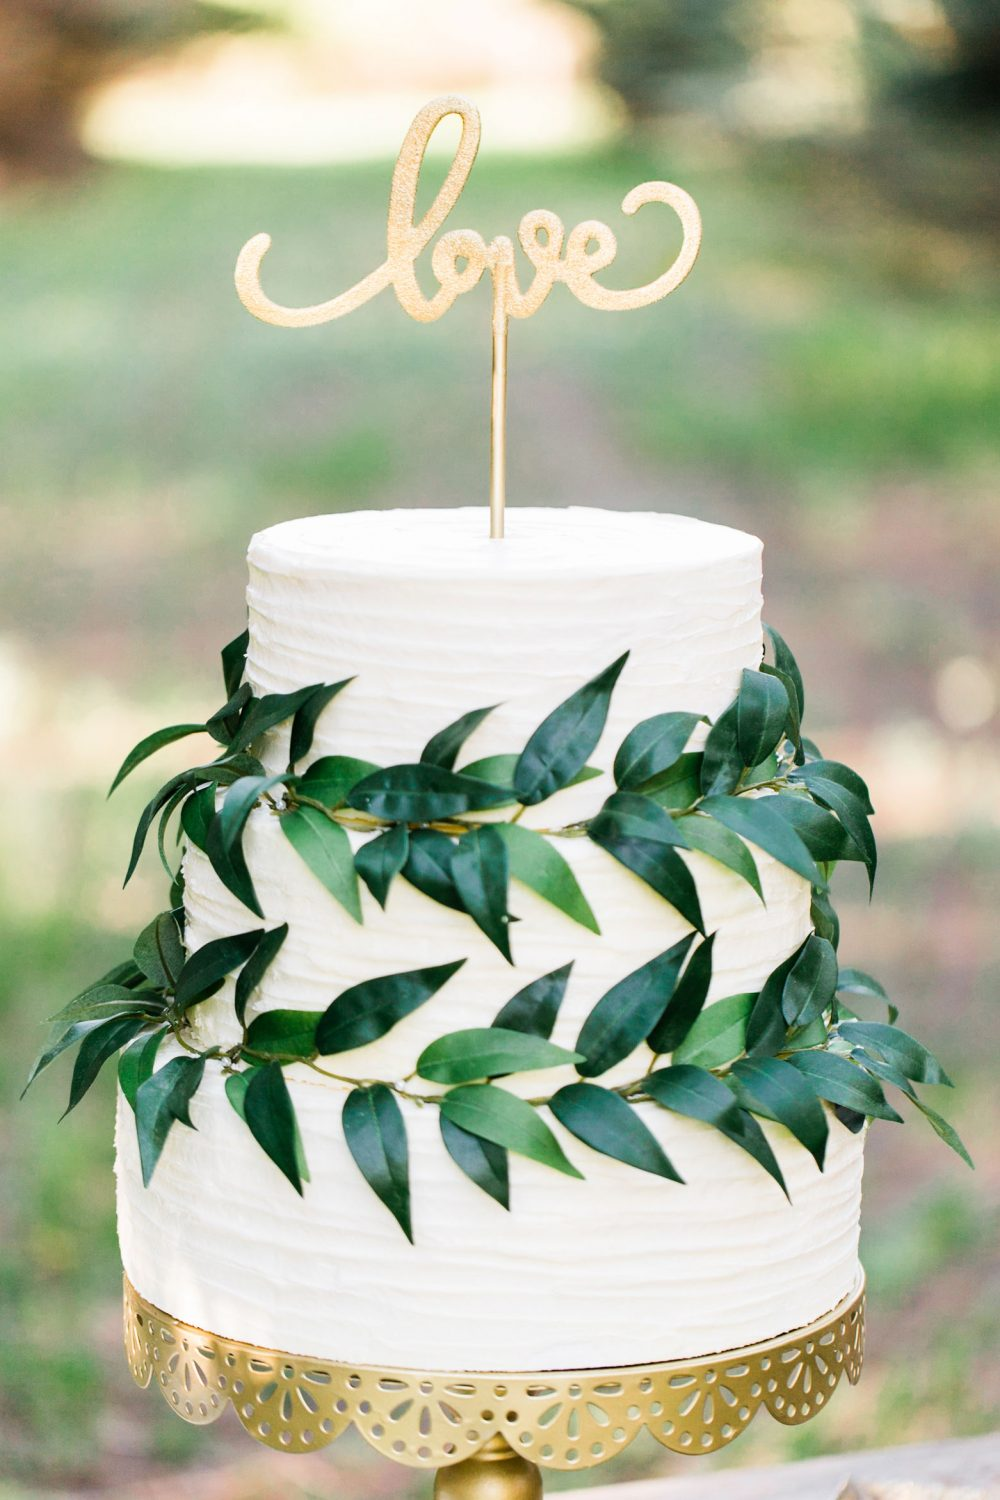 Simple cake with gold and greenery